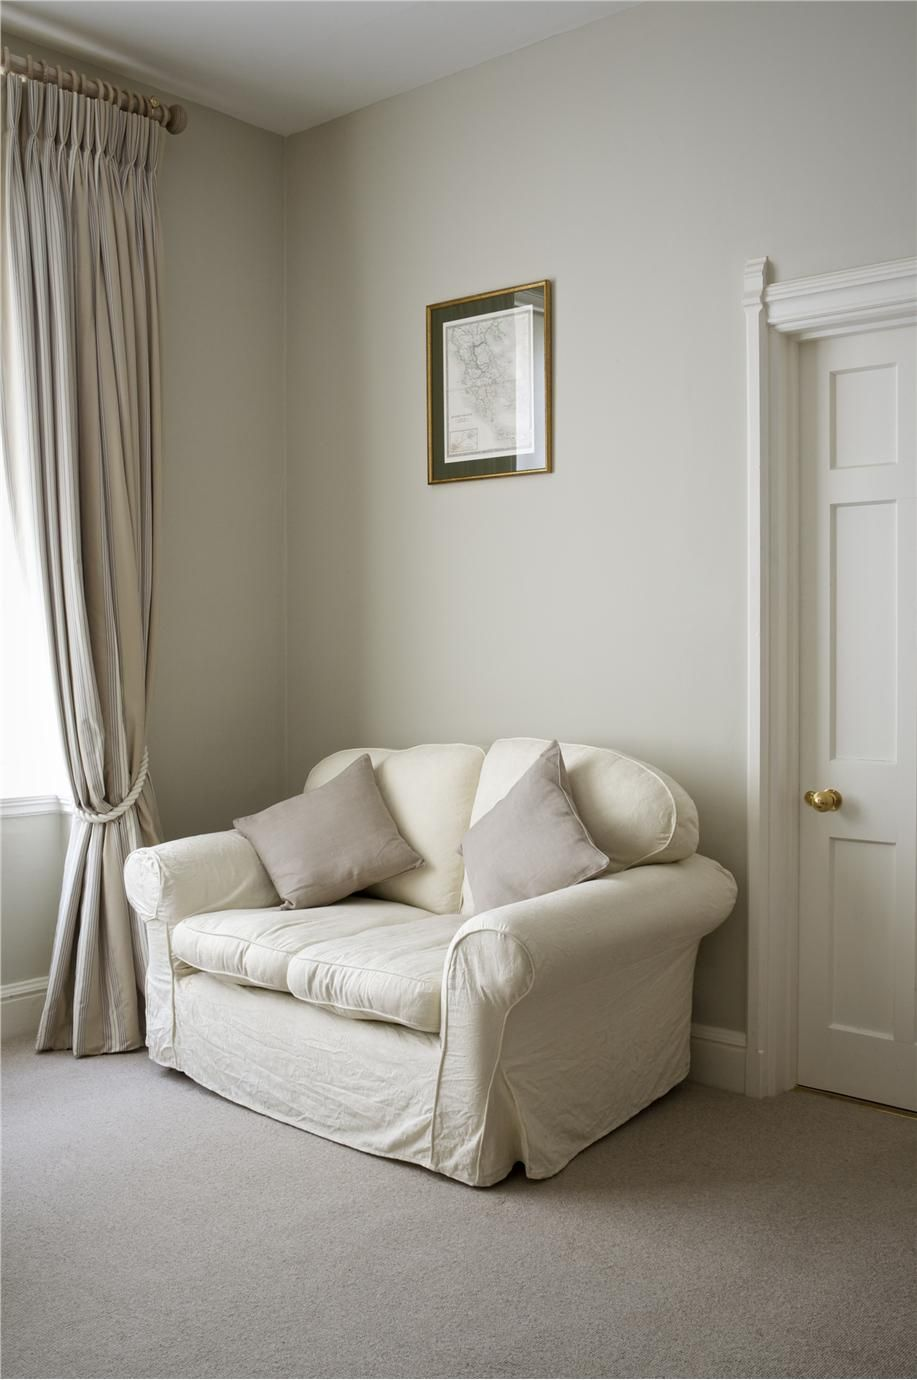 White Paint For Living Room Farrow And Ball Lounge With Walls In Old White Estate Emulsion And